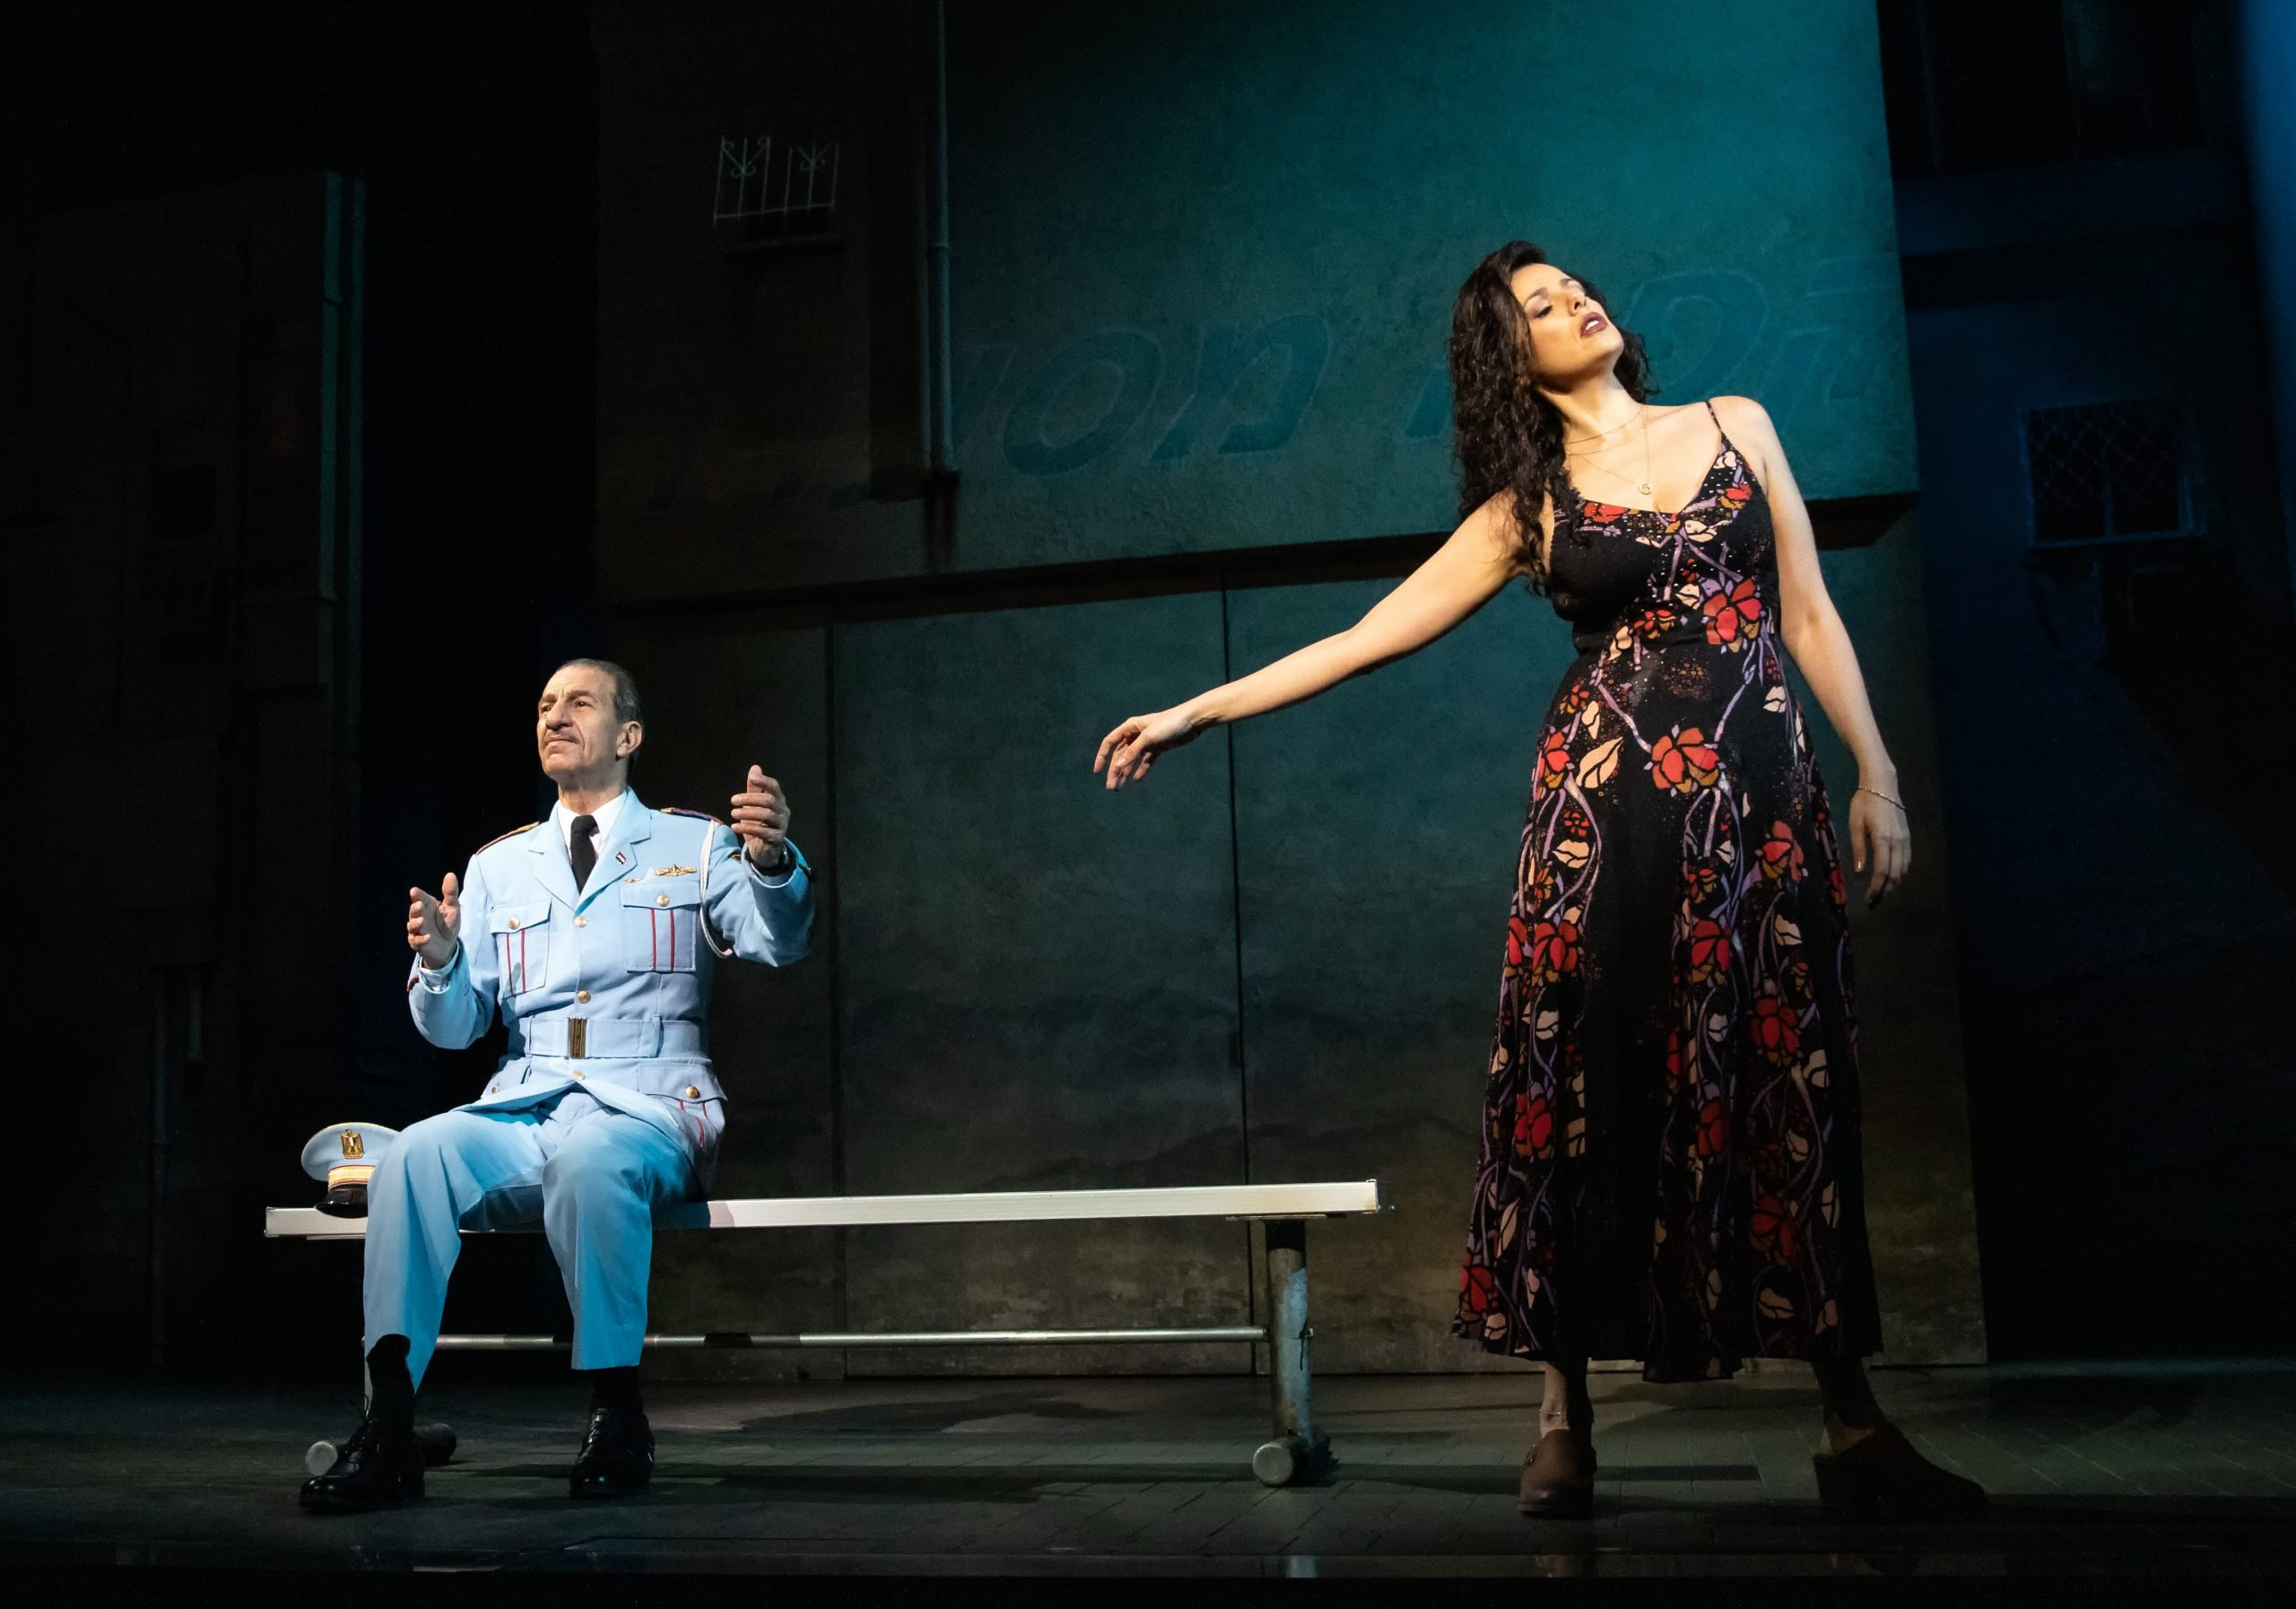 The touring production of 'The Band's Visit' features touching moments between Dina (Janet Dacal) and Tewfiq (Sasson Gabay). Gabay starred in the film on which the musical is based. (photo: Photo by Evan Zimmerman, MurphyMade. )